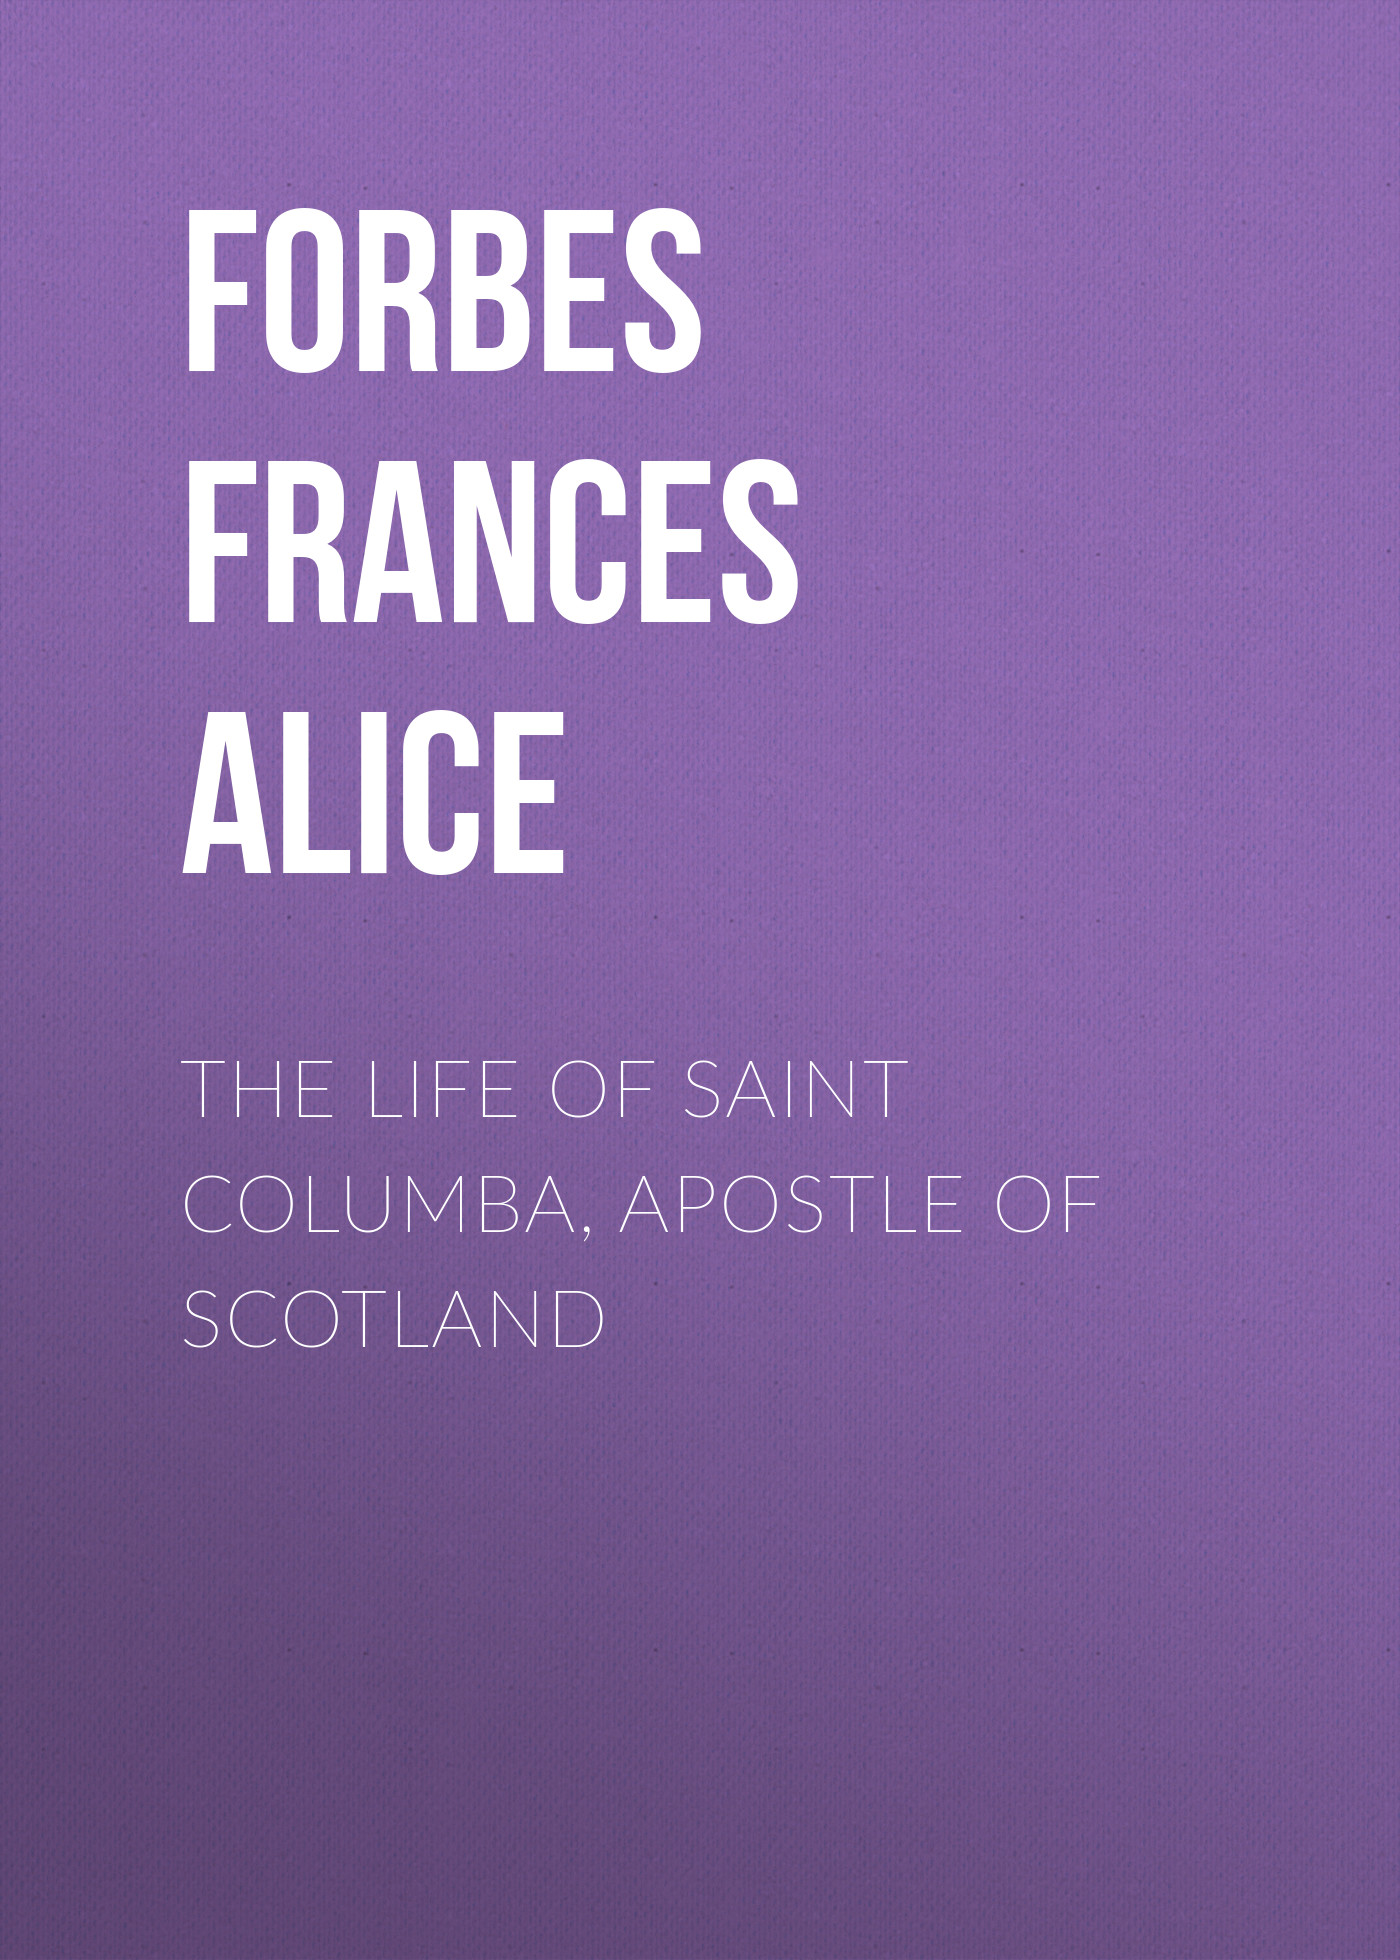 Forbes Frances Alice The Life of Saint Columba, Apostle of Scotland the bells of scotland road